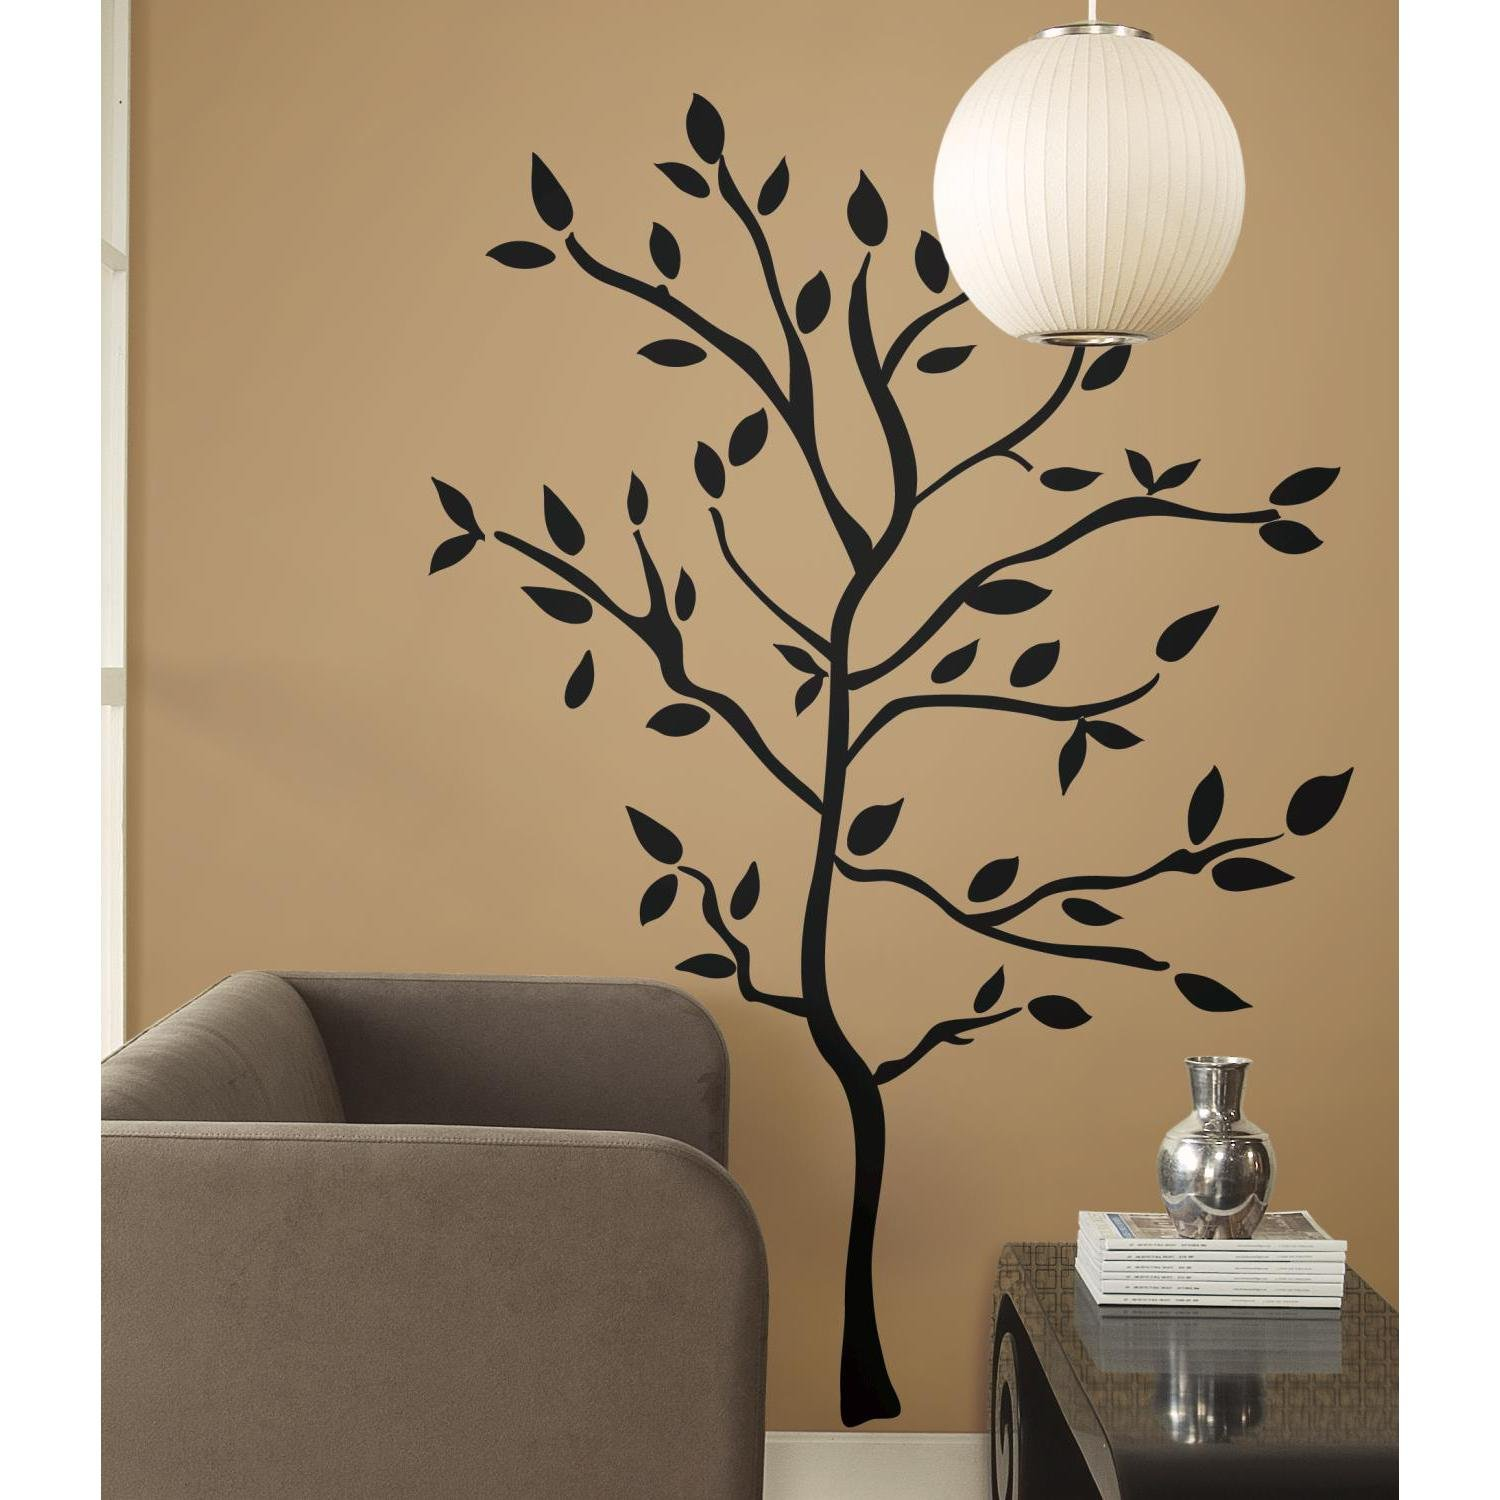 RoomMates Tree Branches Peel and Stick Wall Decals by RoomMates